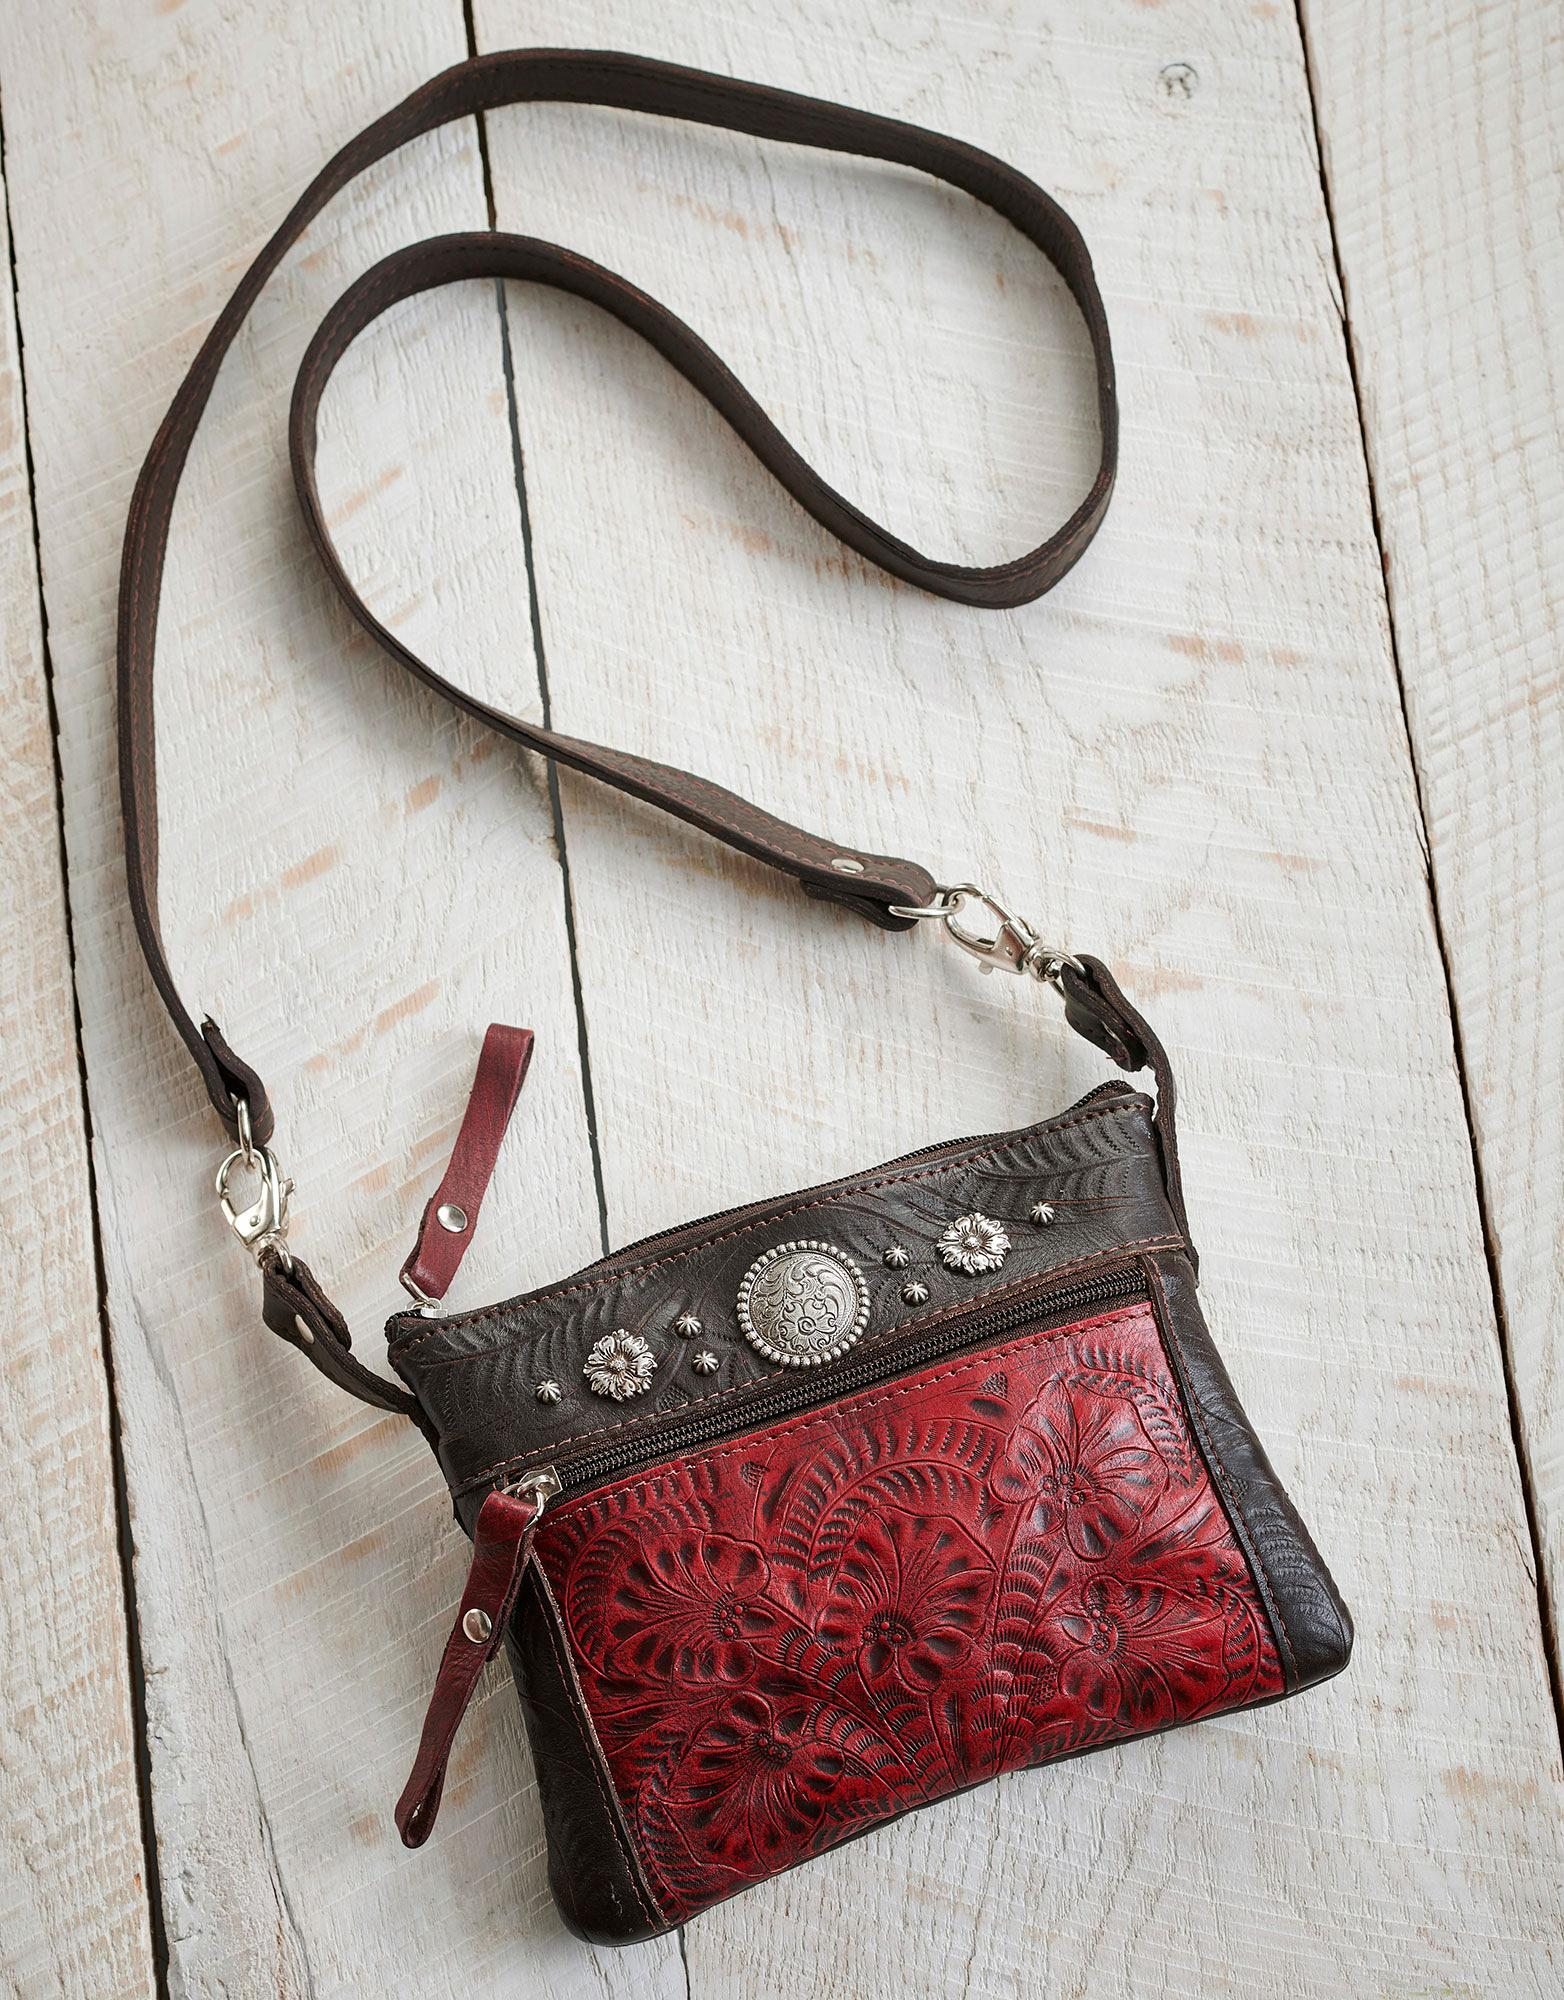 Trail Rider Crossbody Handbag